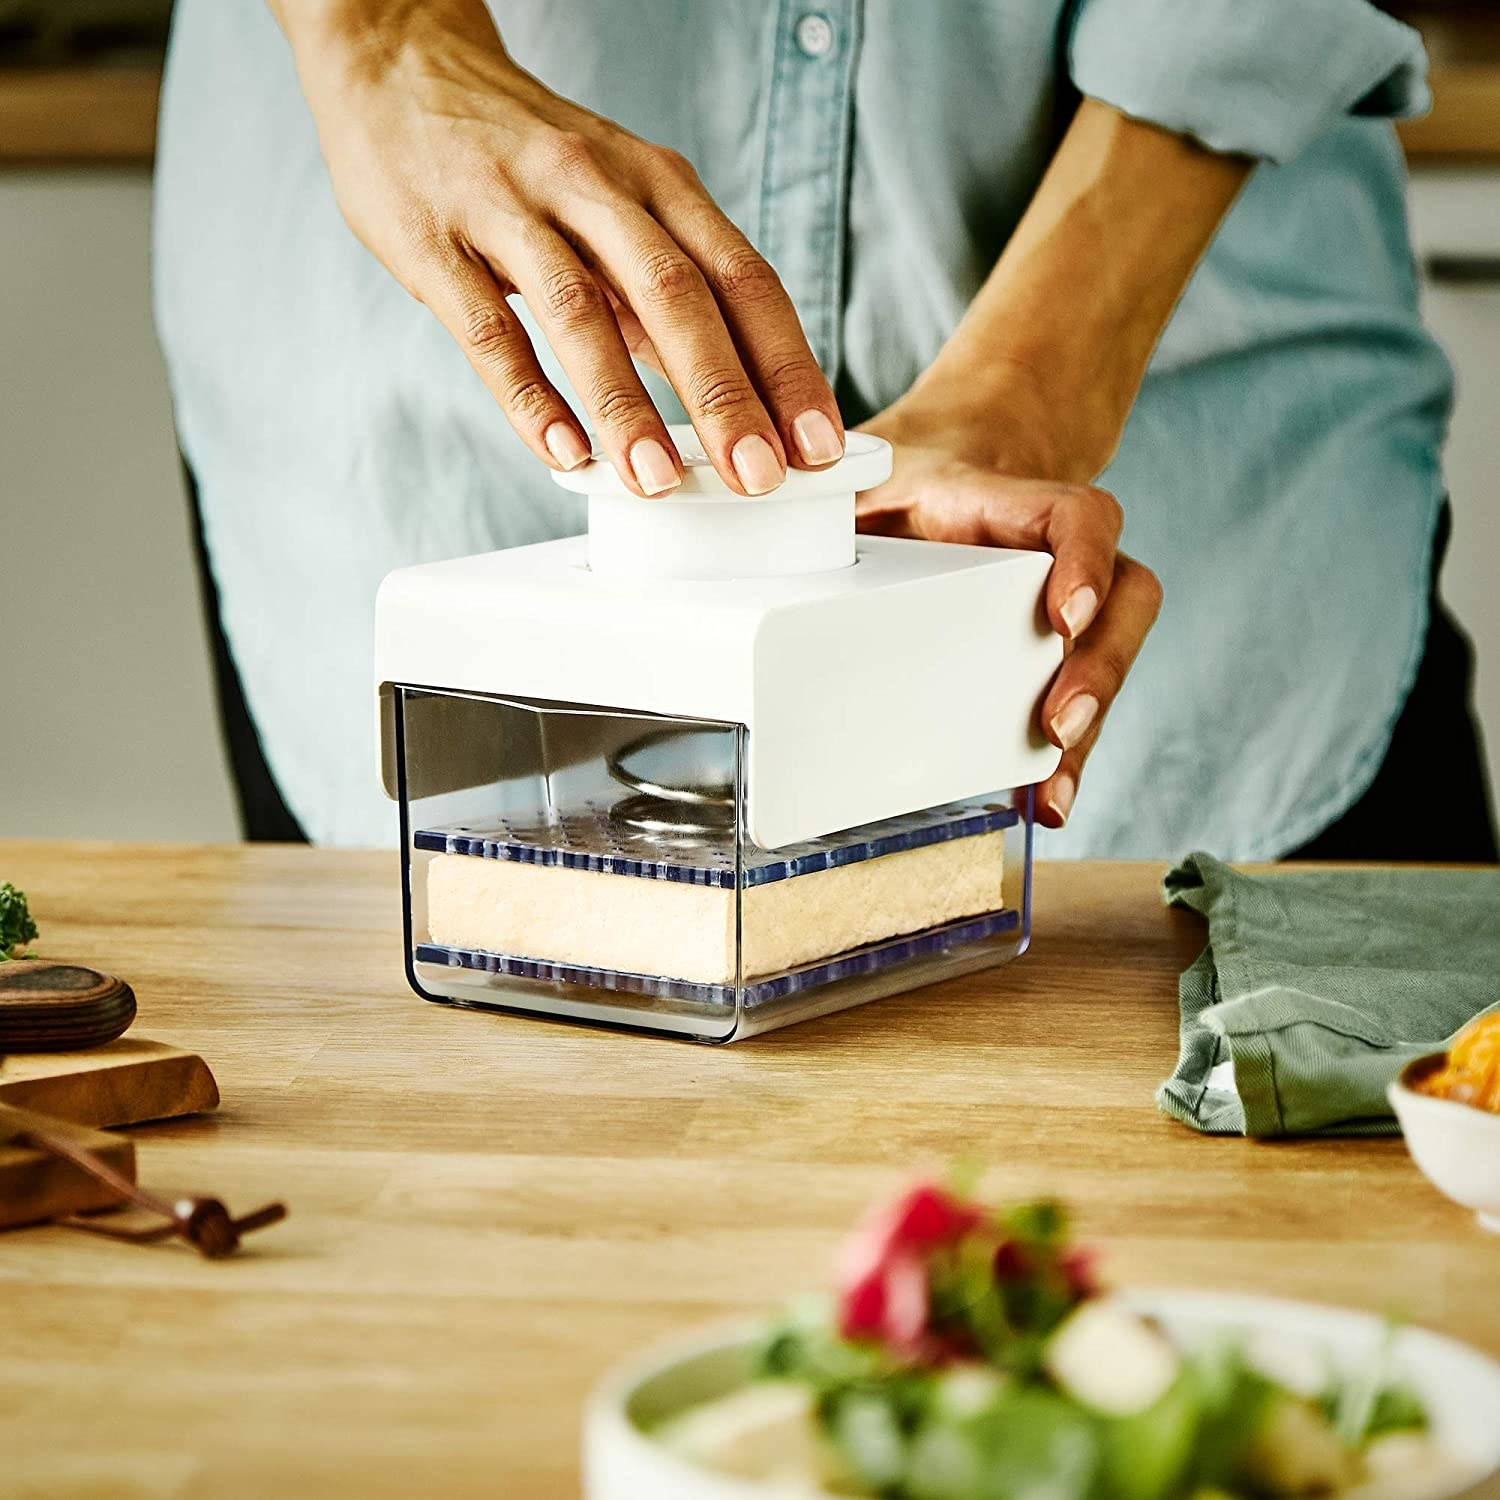 A person pressing tofu with the device